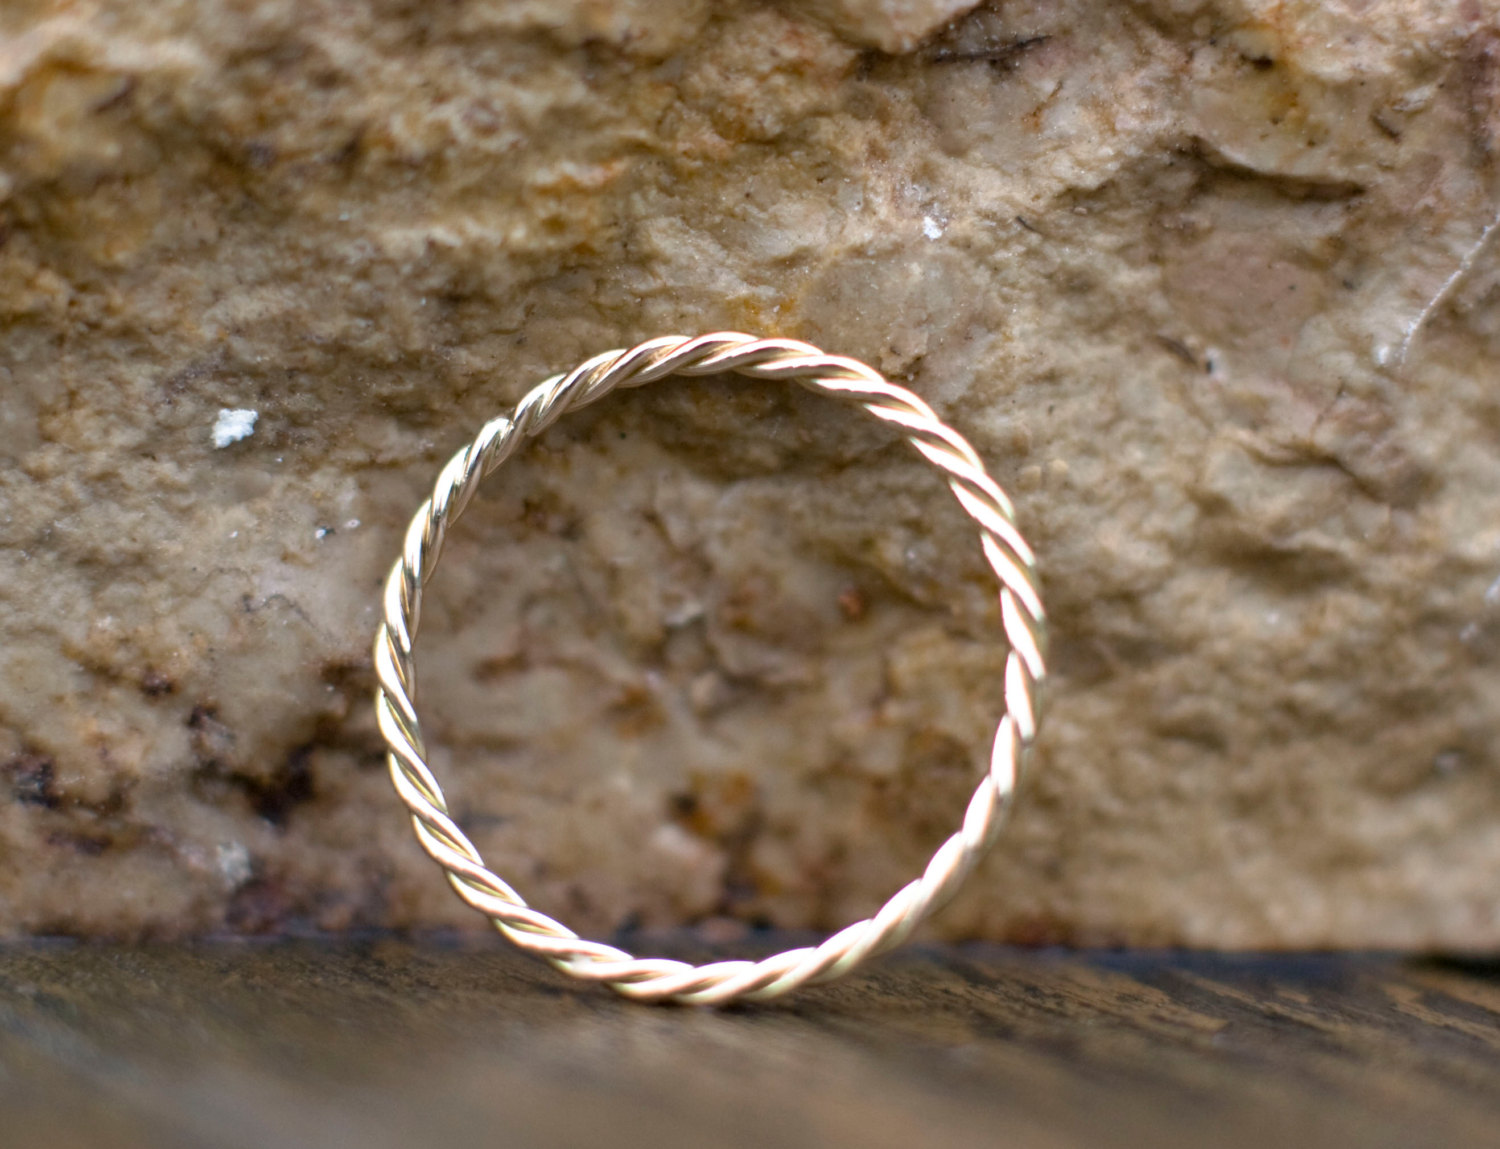 12mm gold band unique wedding ring for her solid 14k gold jewelry